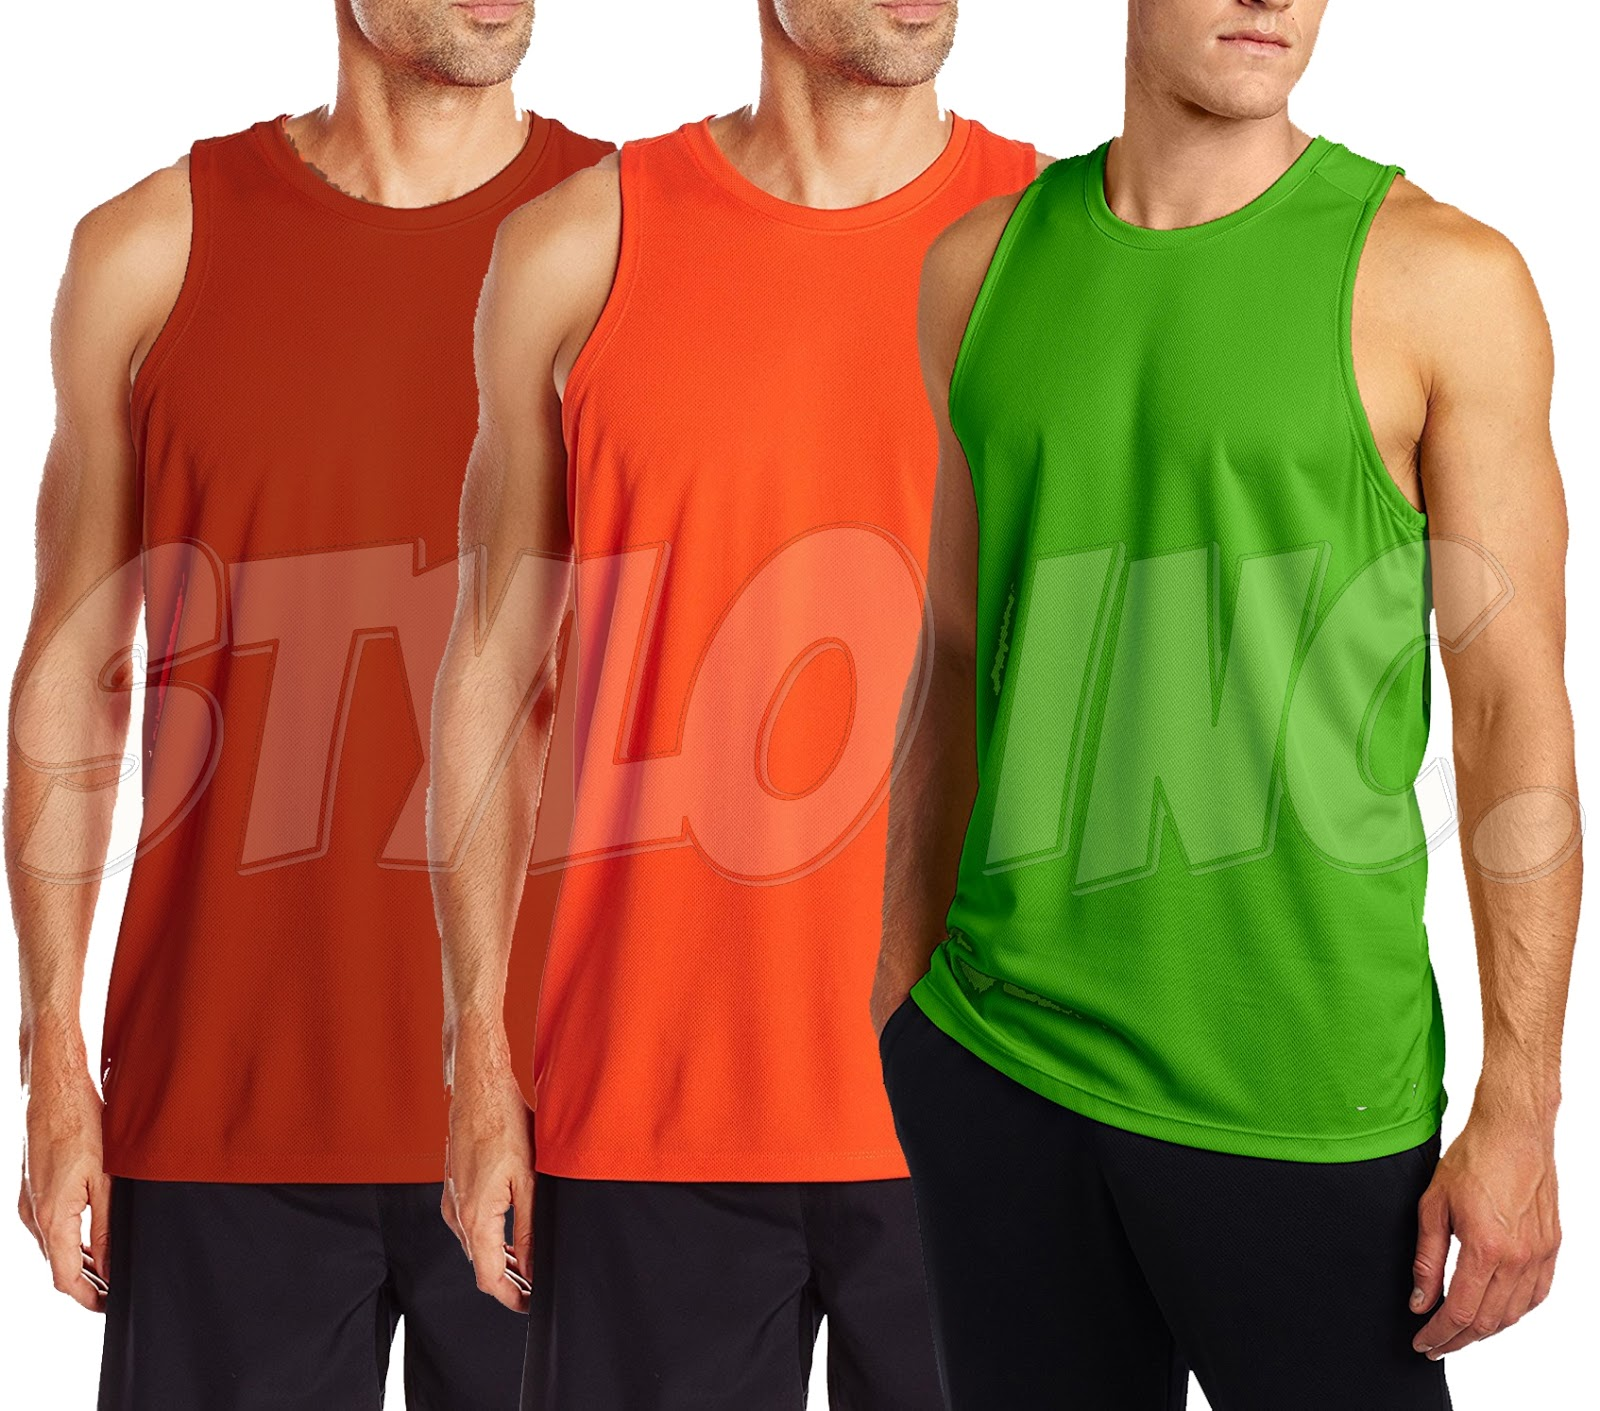 2 Color Reversible Dri-Fit Singlet 6pcs Bundle